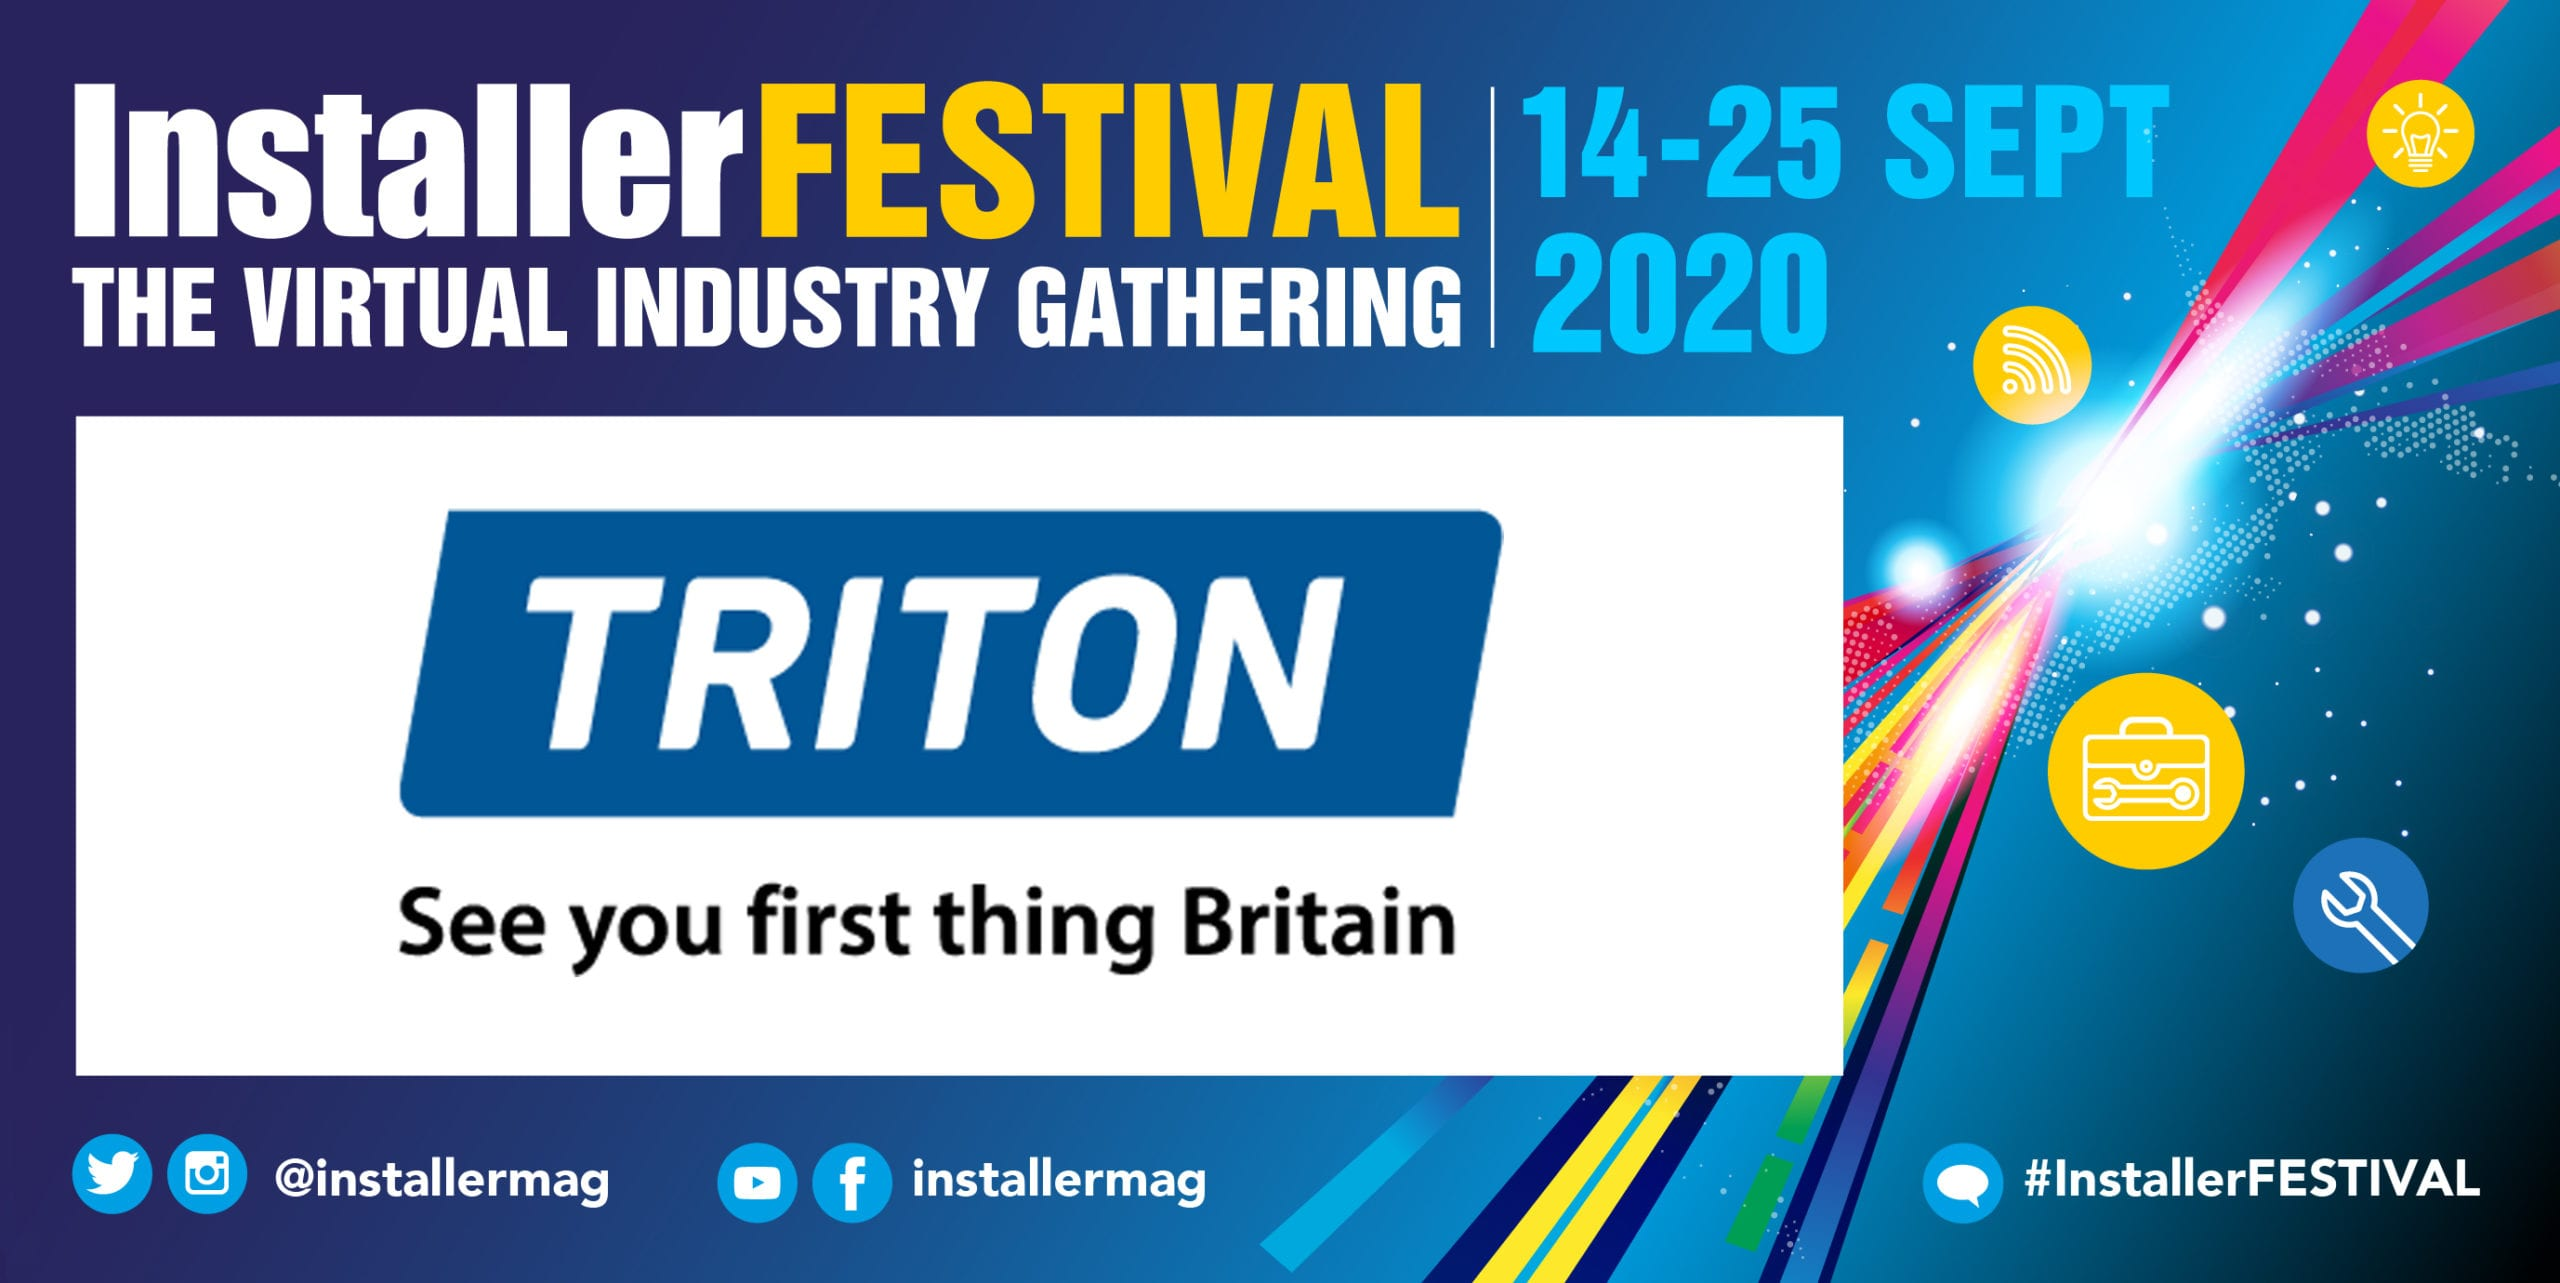 Popular - Discover the perfect fit with Triton at InstallerFESTIVAL